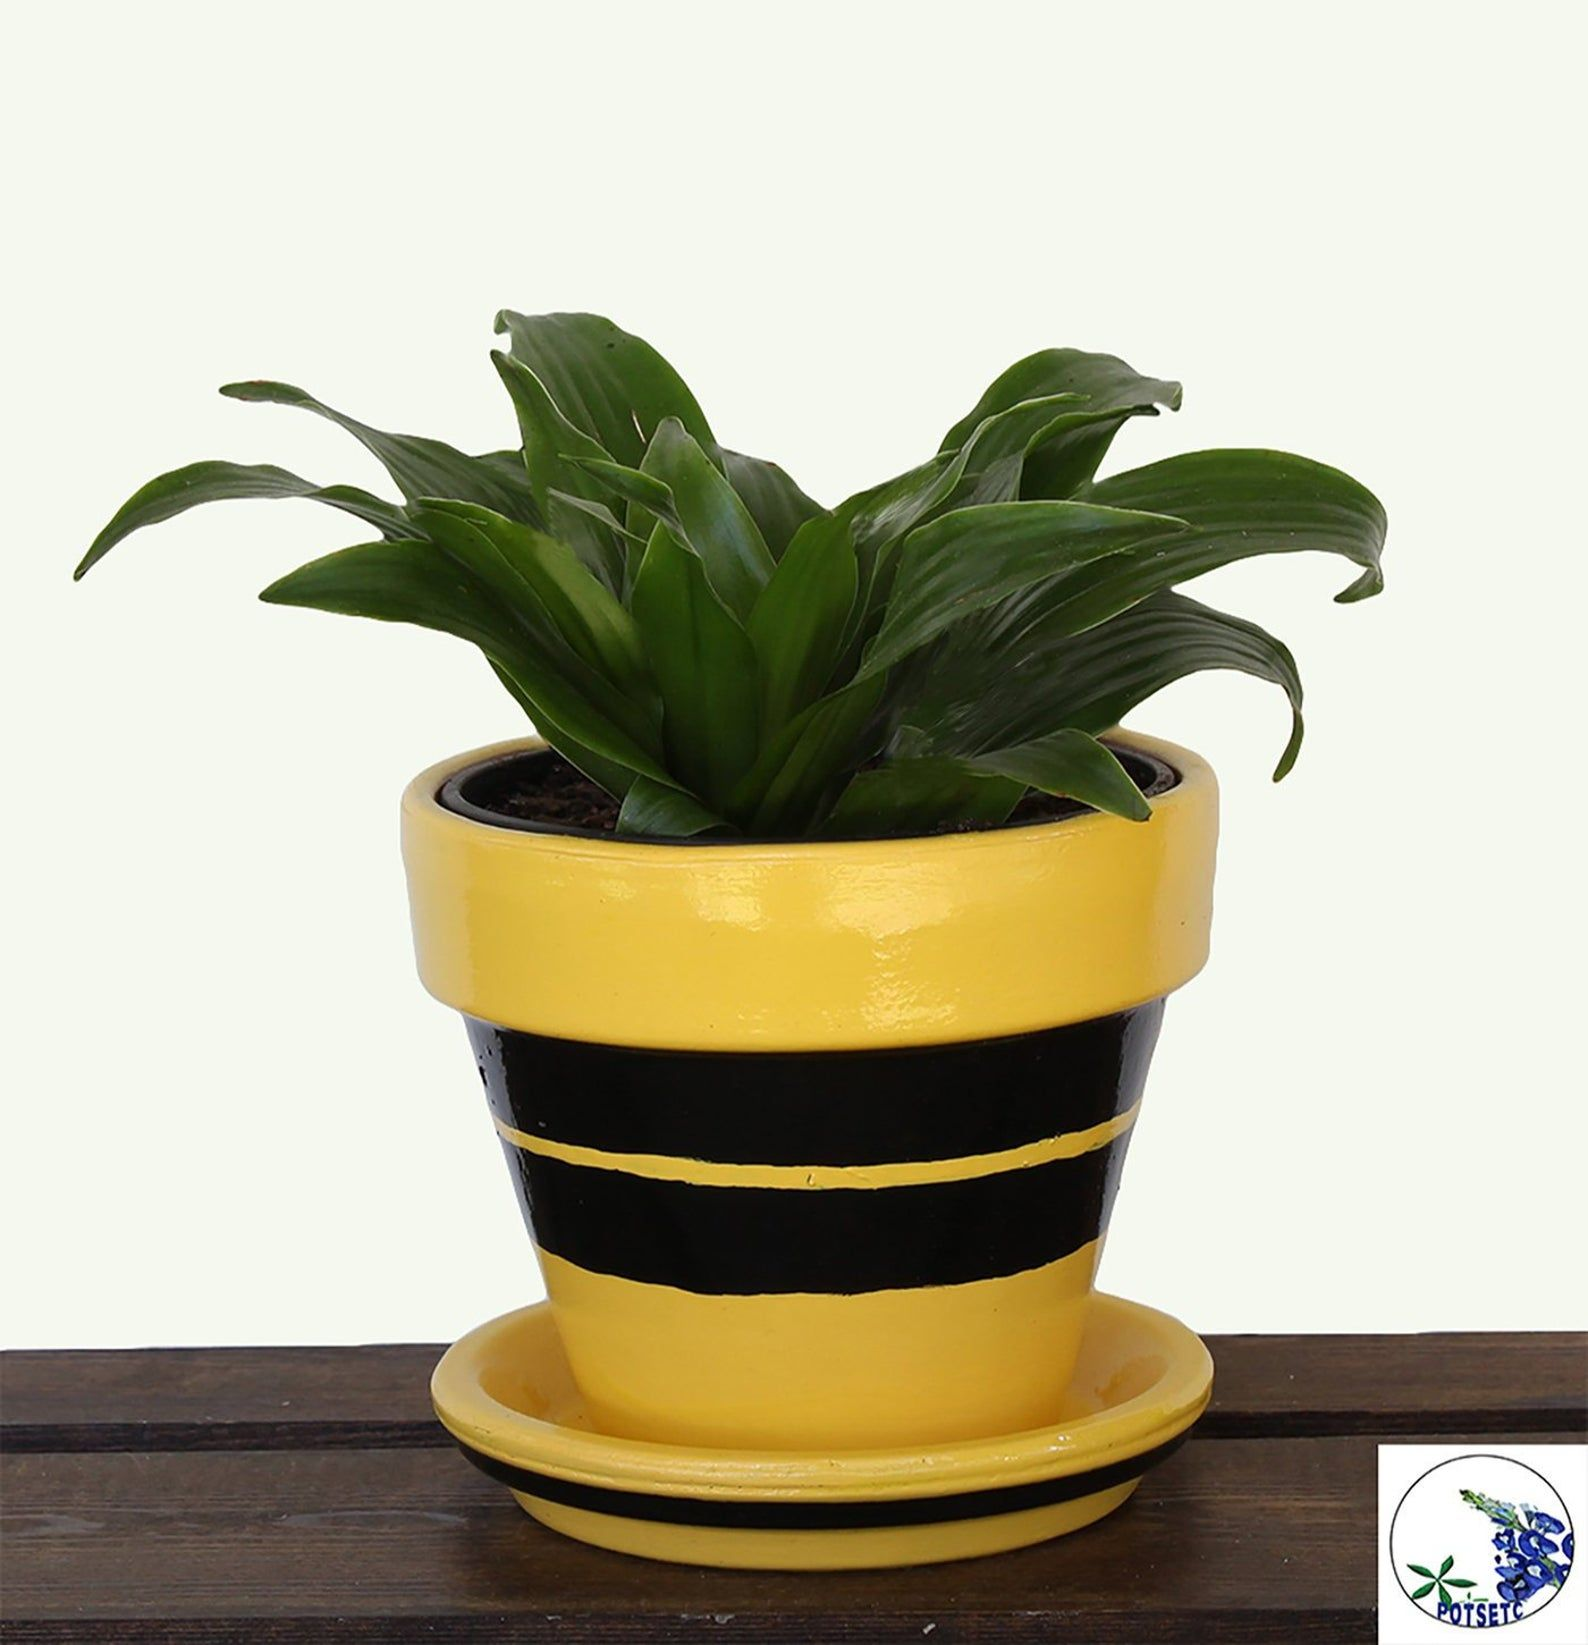 Yellow And Black Modern 4 Inch Planter Plant Pot Flower Etsy Patio Planters Small Flower Pots Flower Pots